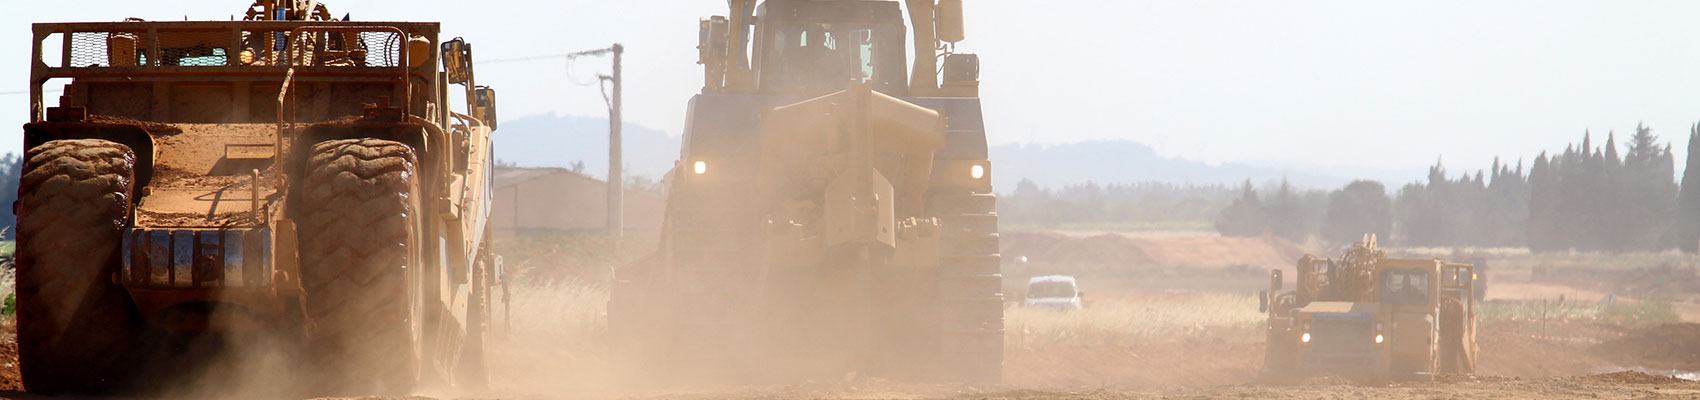 Heavy equipment driving on a job site